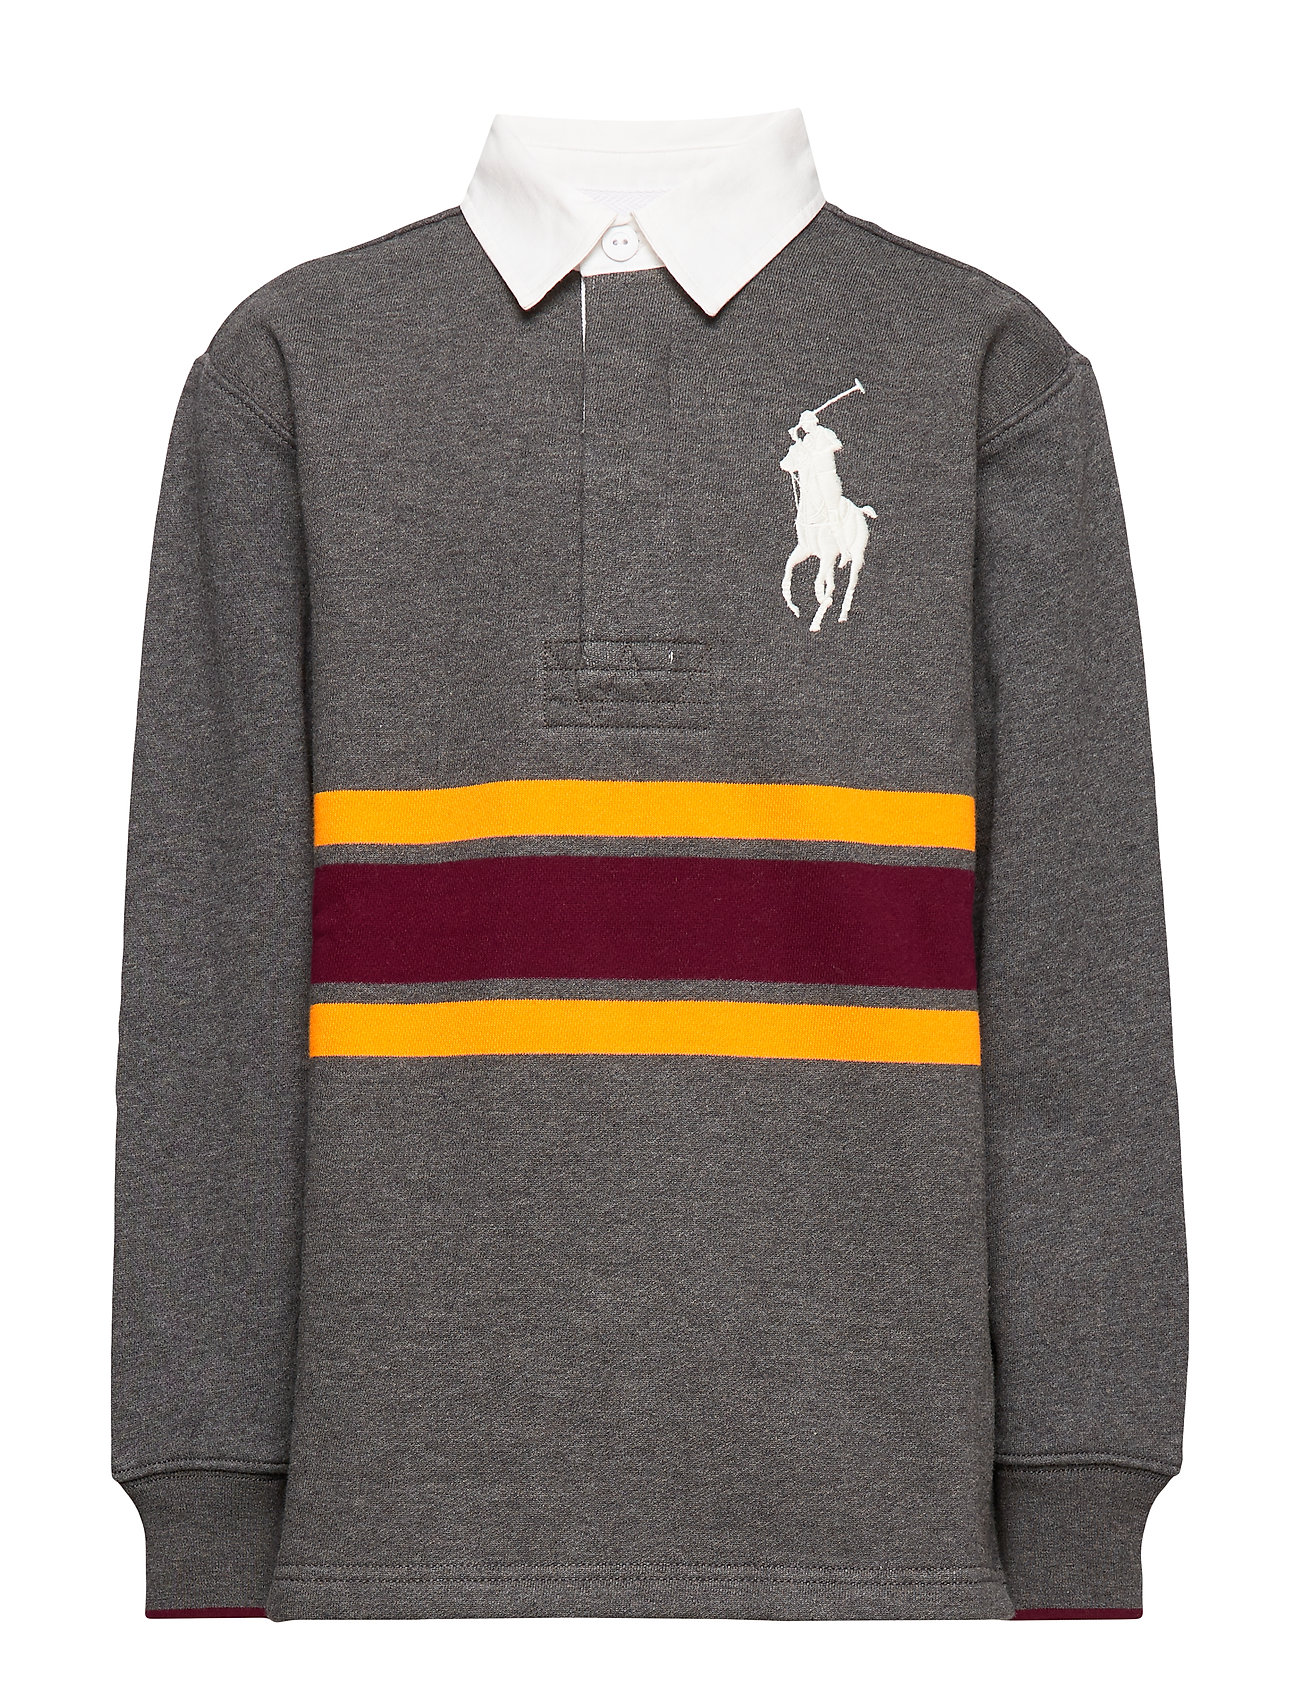 Ralph Lauren Kids Rugby Sweatshirt - FLANNEL GREY HEAT